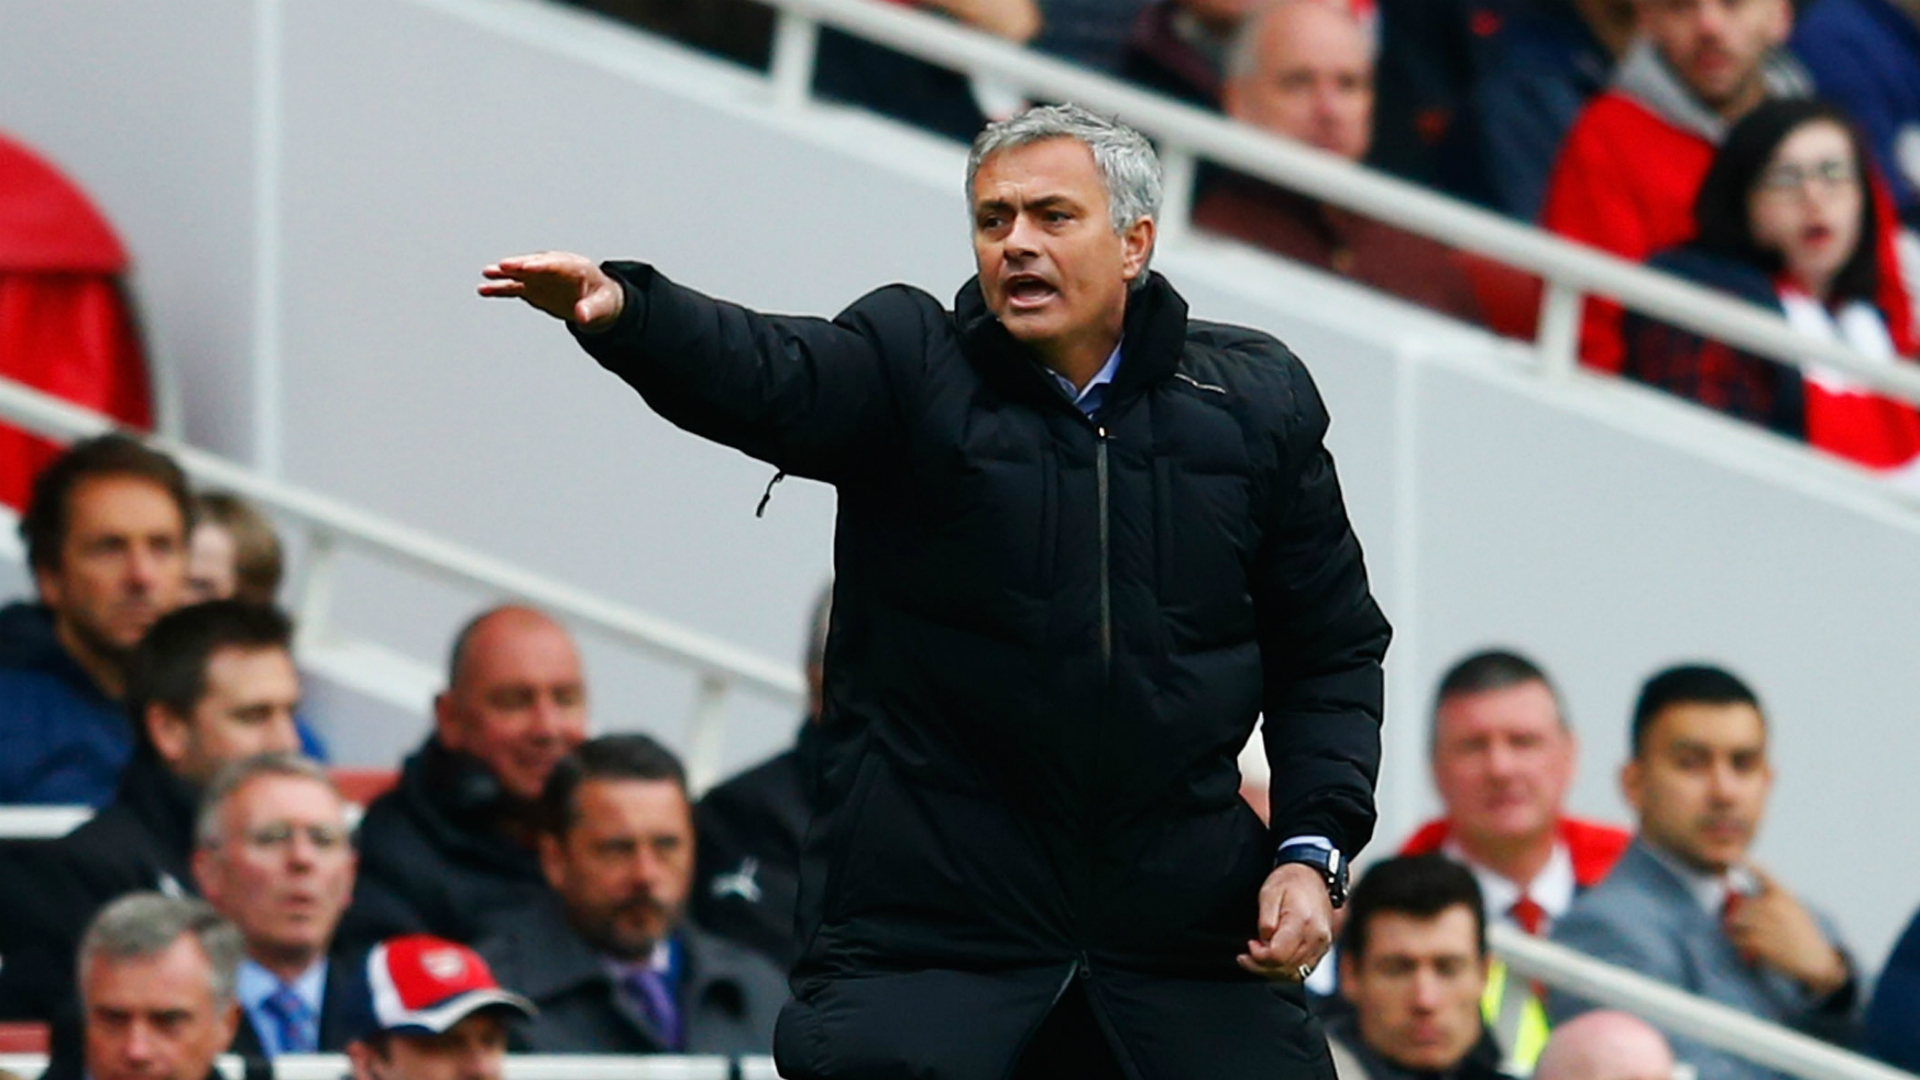 'Boring is 10 years without the title' - Mourinho hits out at Arsenal boo-boys